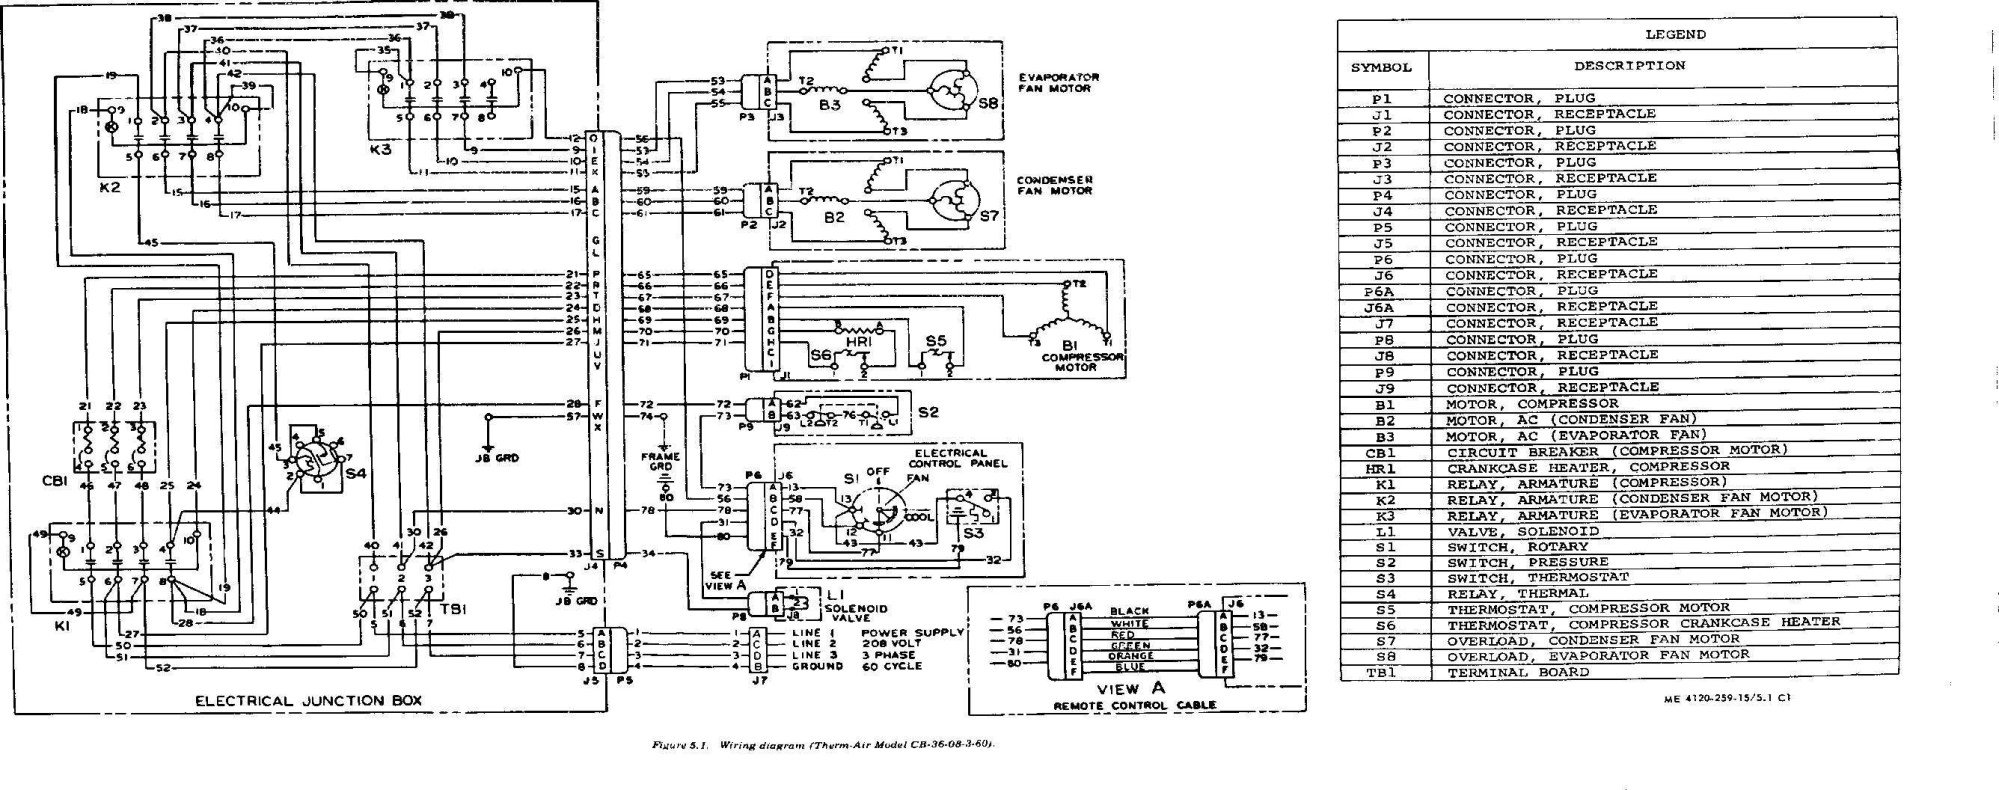 hight resolution of trane wiring diagrams wiring diagram name trane heat pump wiring schematic trane heater wiring schematic